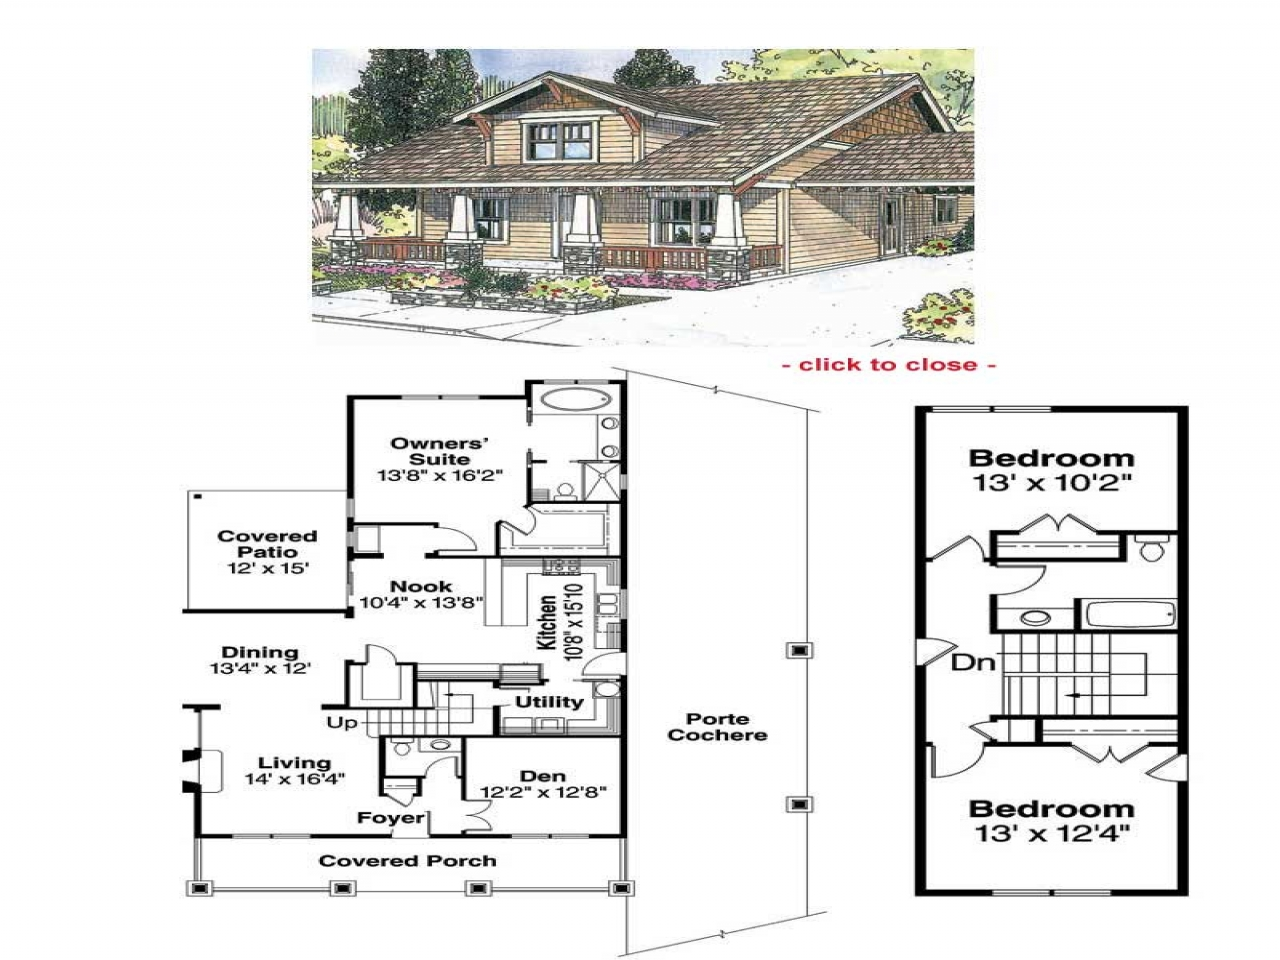 Craftsman bungalow plans find house plans vintage for Find home blueprints